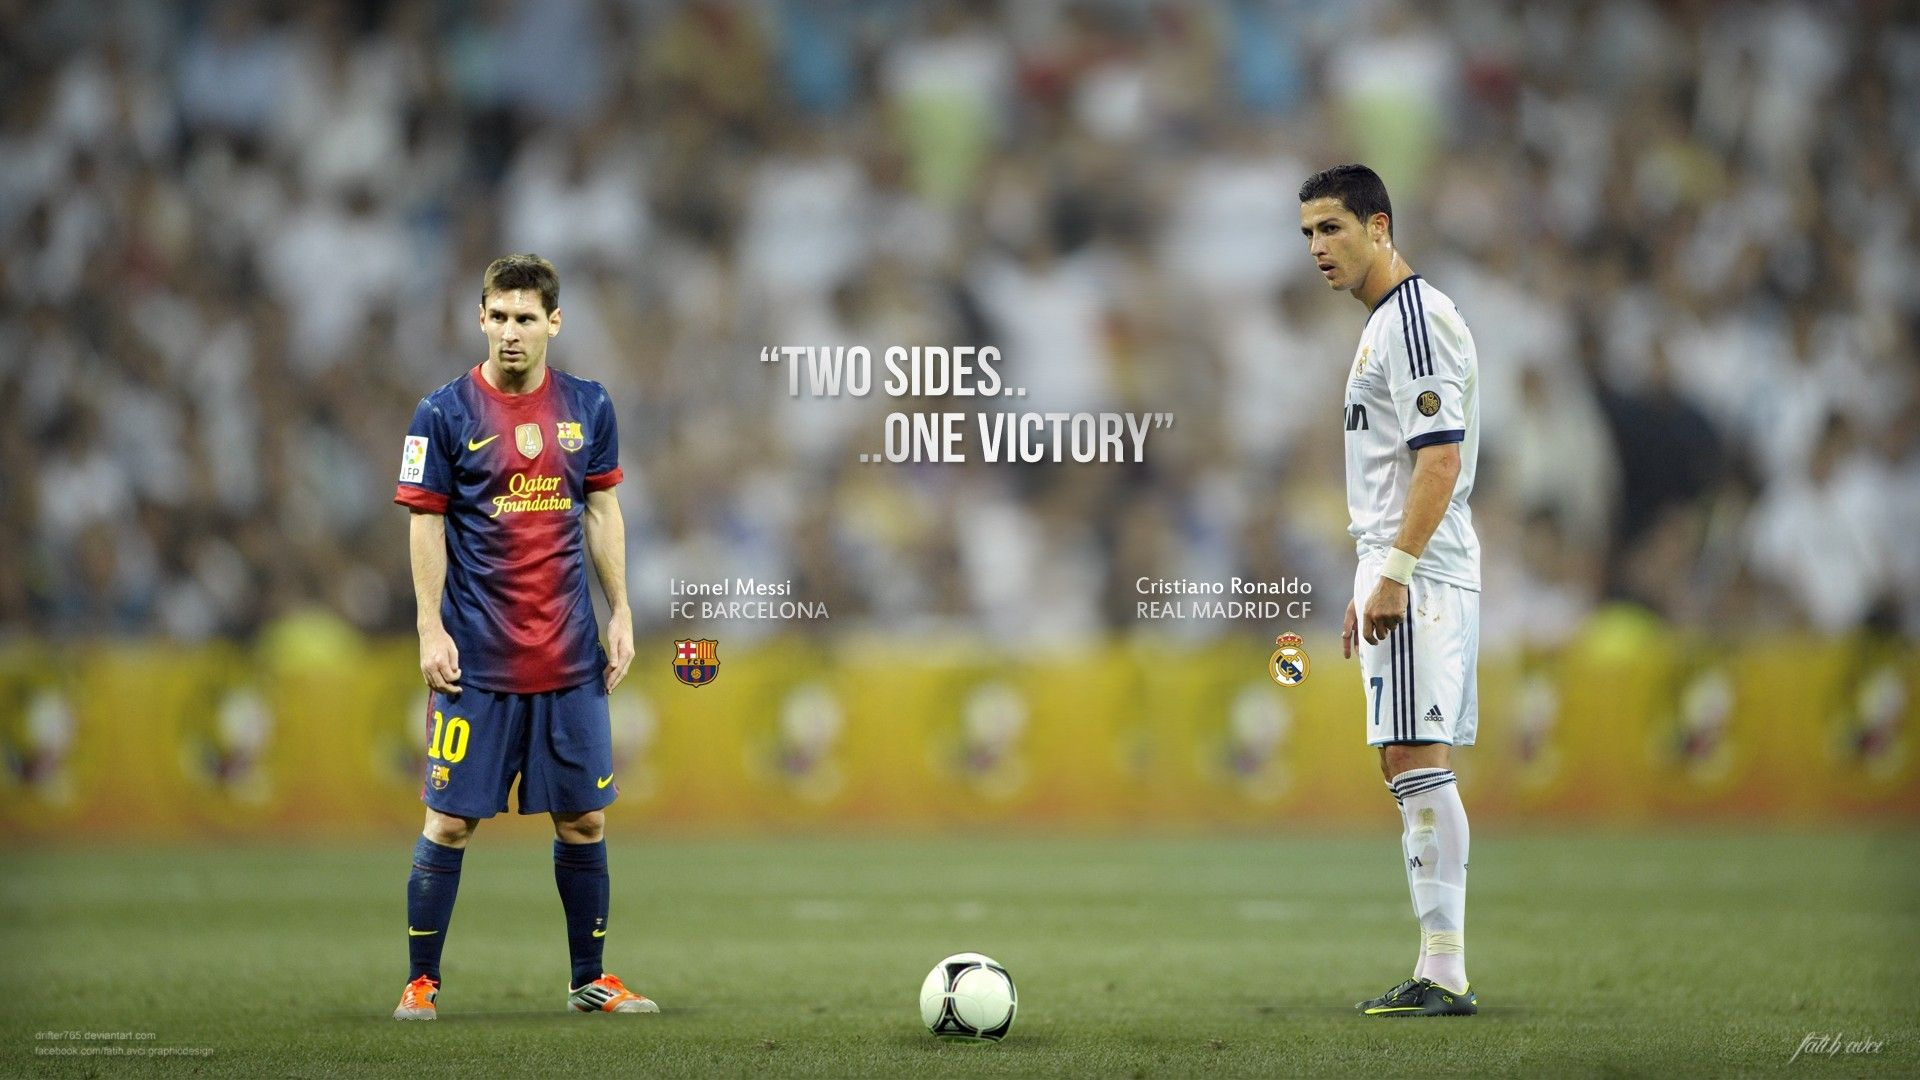 Adorable Real Madrid Pictures Real Madrid Wallpapers Soccer Images Messi Vs Lionel Messi